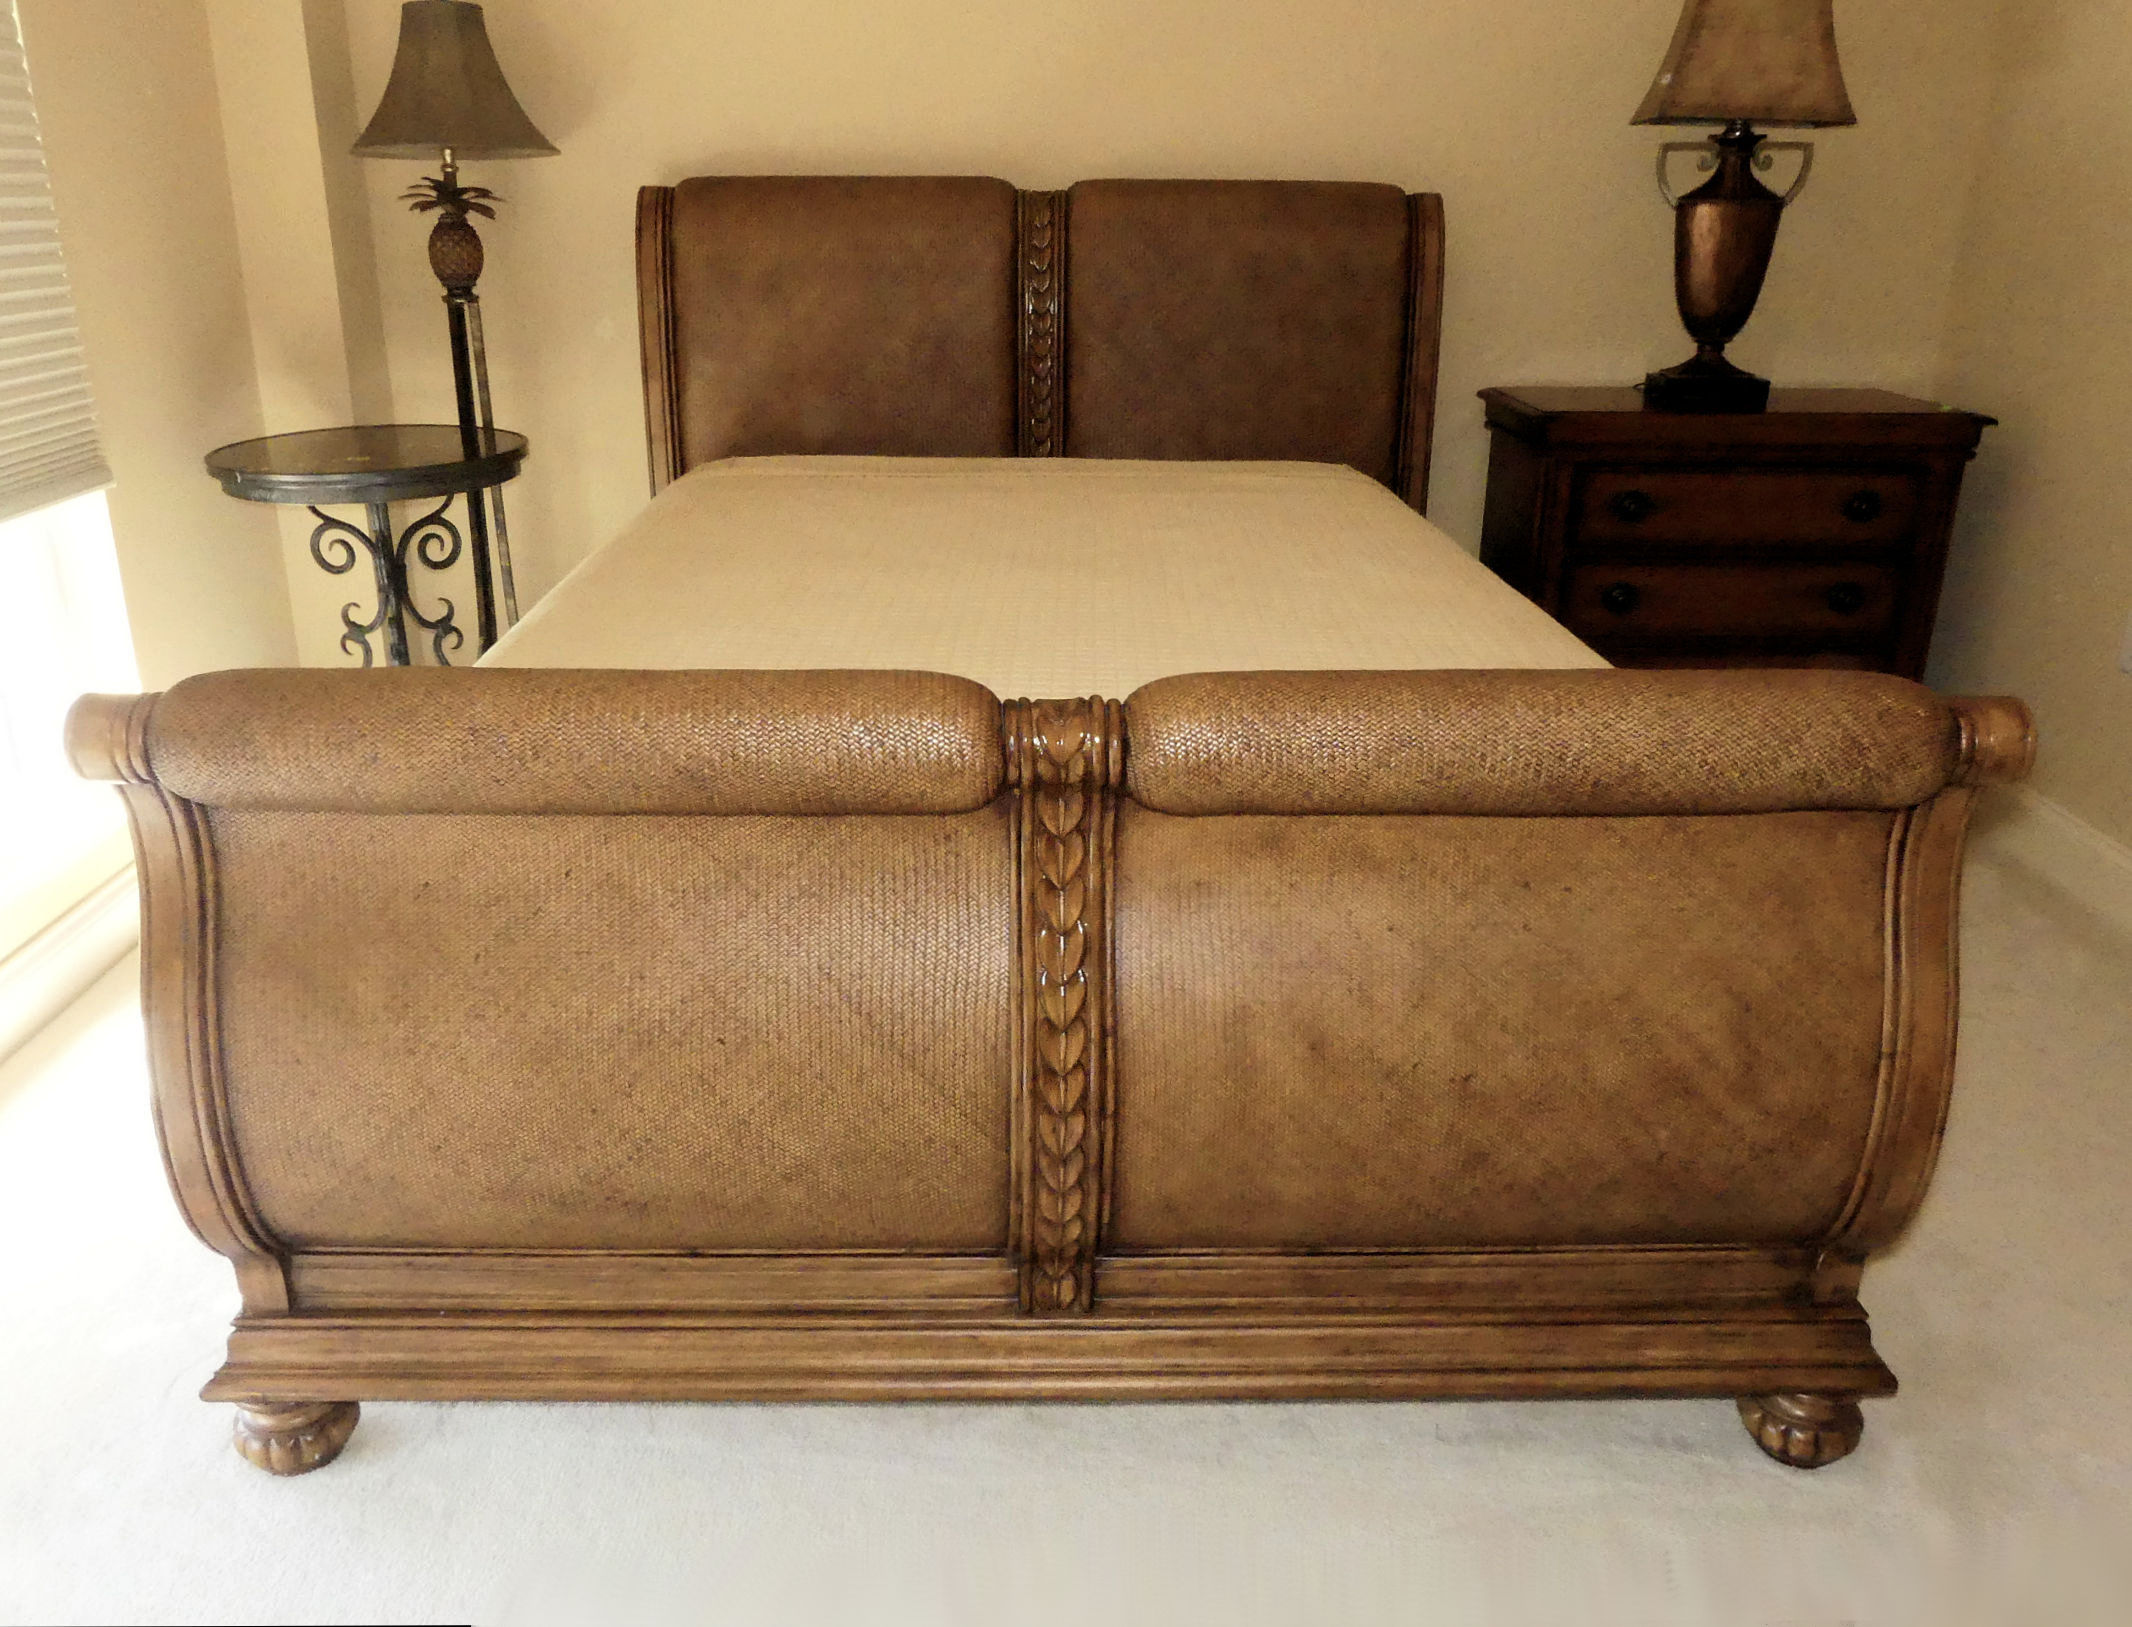 Sold - Tommy Bahama Queen Sleigh Bed